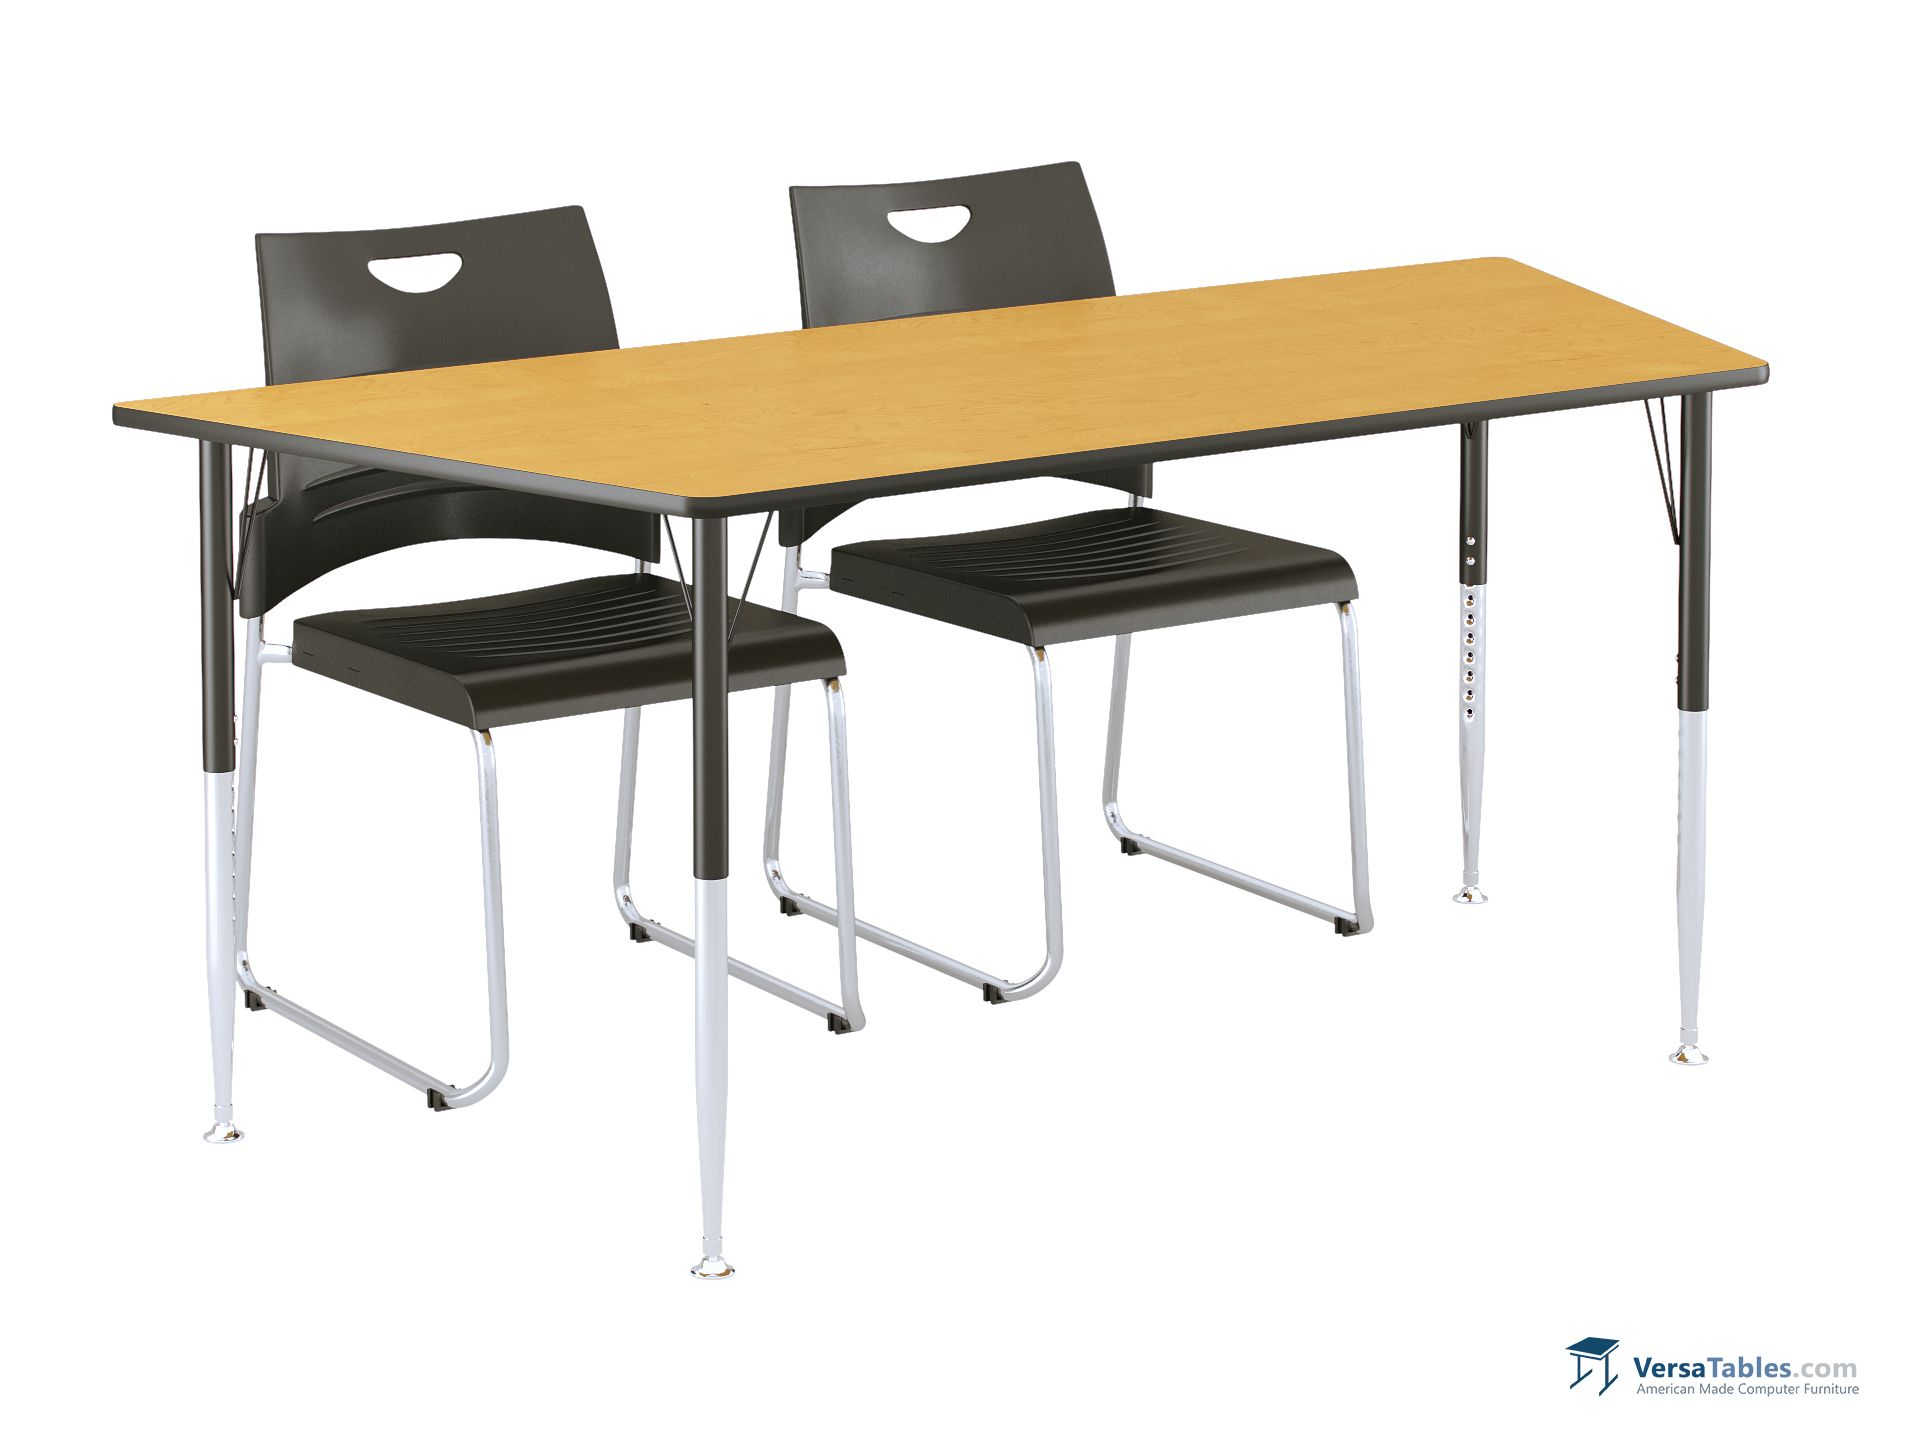 versa connect activity table trapezoid vcat trap series by versa